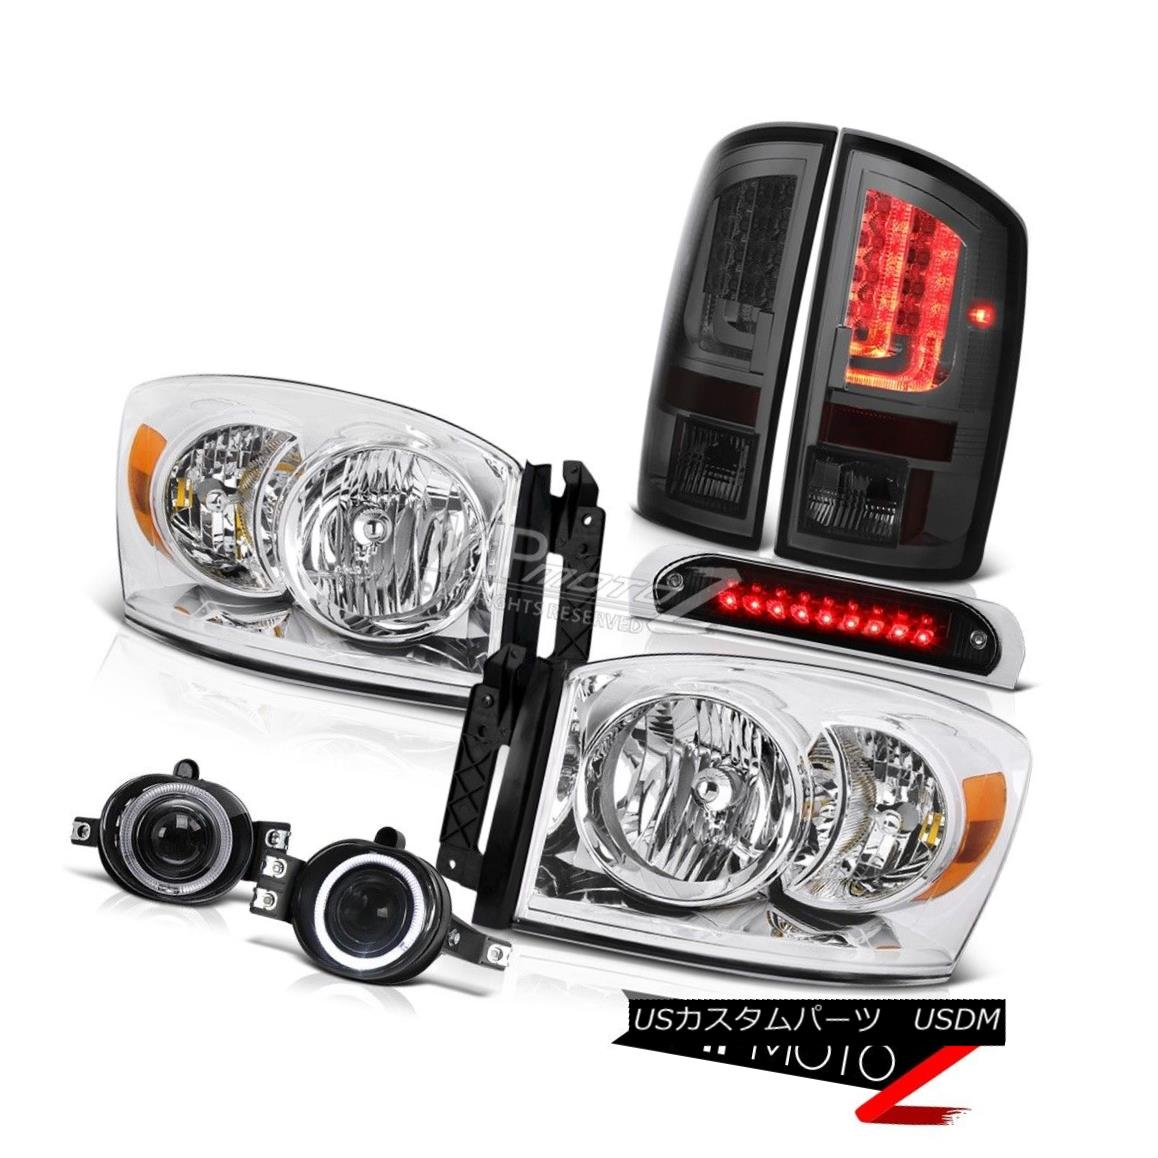 テールライト 2006 Ram ST Smokey Taillamps Third Brake Lamp Headlights Fog Lights Light Bar 2006 Ram ST Smokey Taillamps第3ブレーキランプヘッドライトフォグライトライトバー